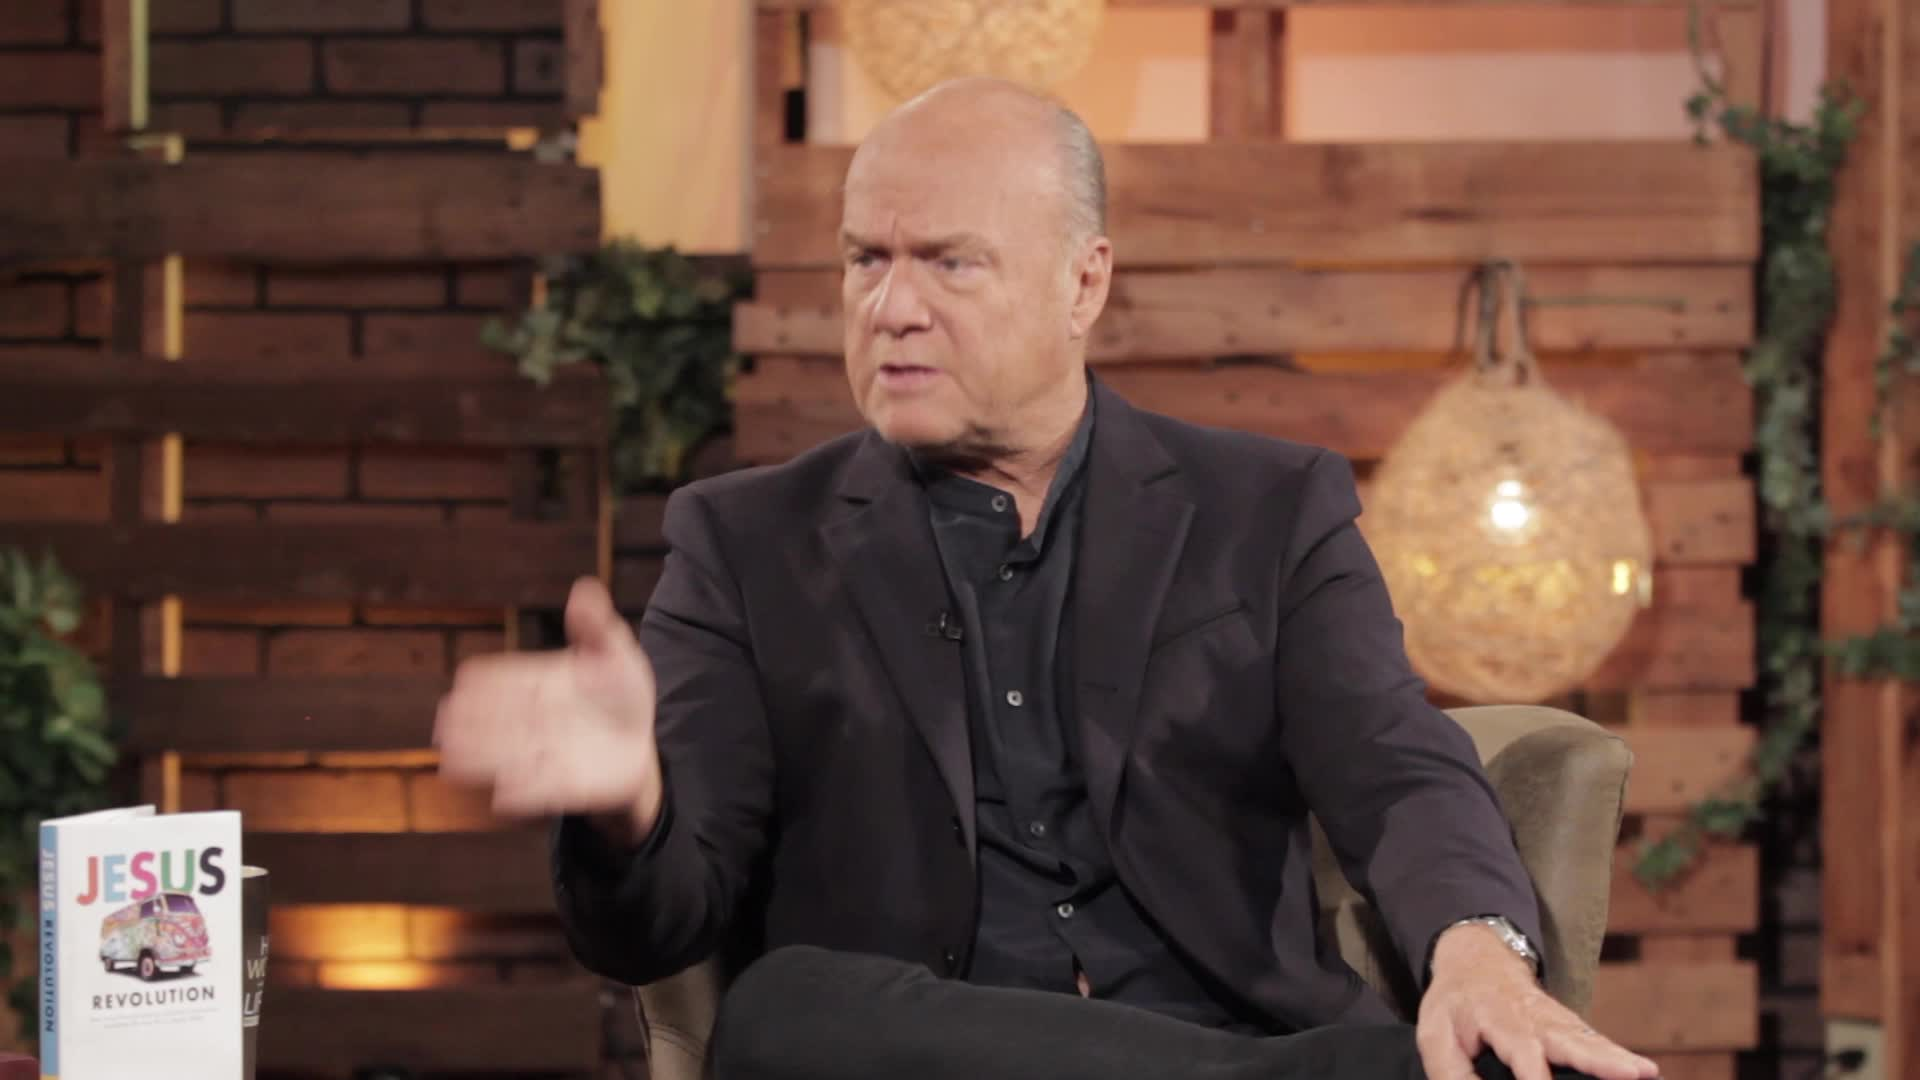 Greg Laurie: The Jesus Revolution by LIFE Today+ with Randy Robison